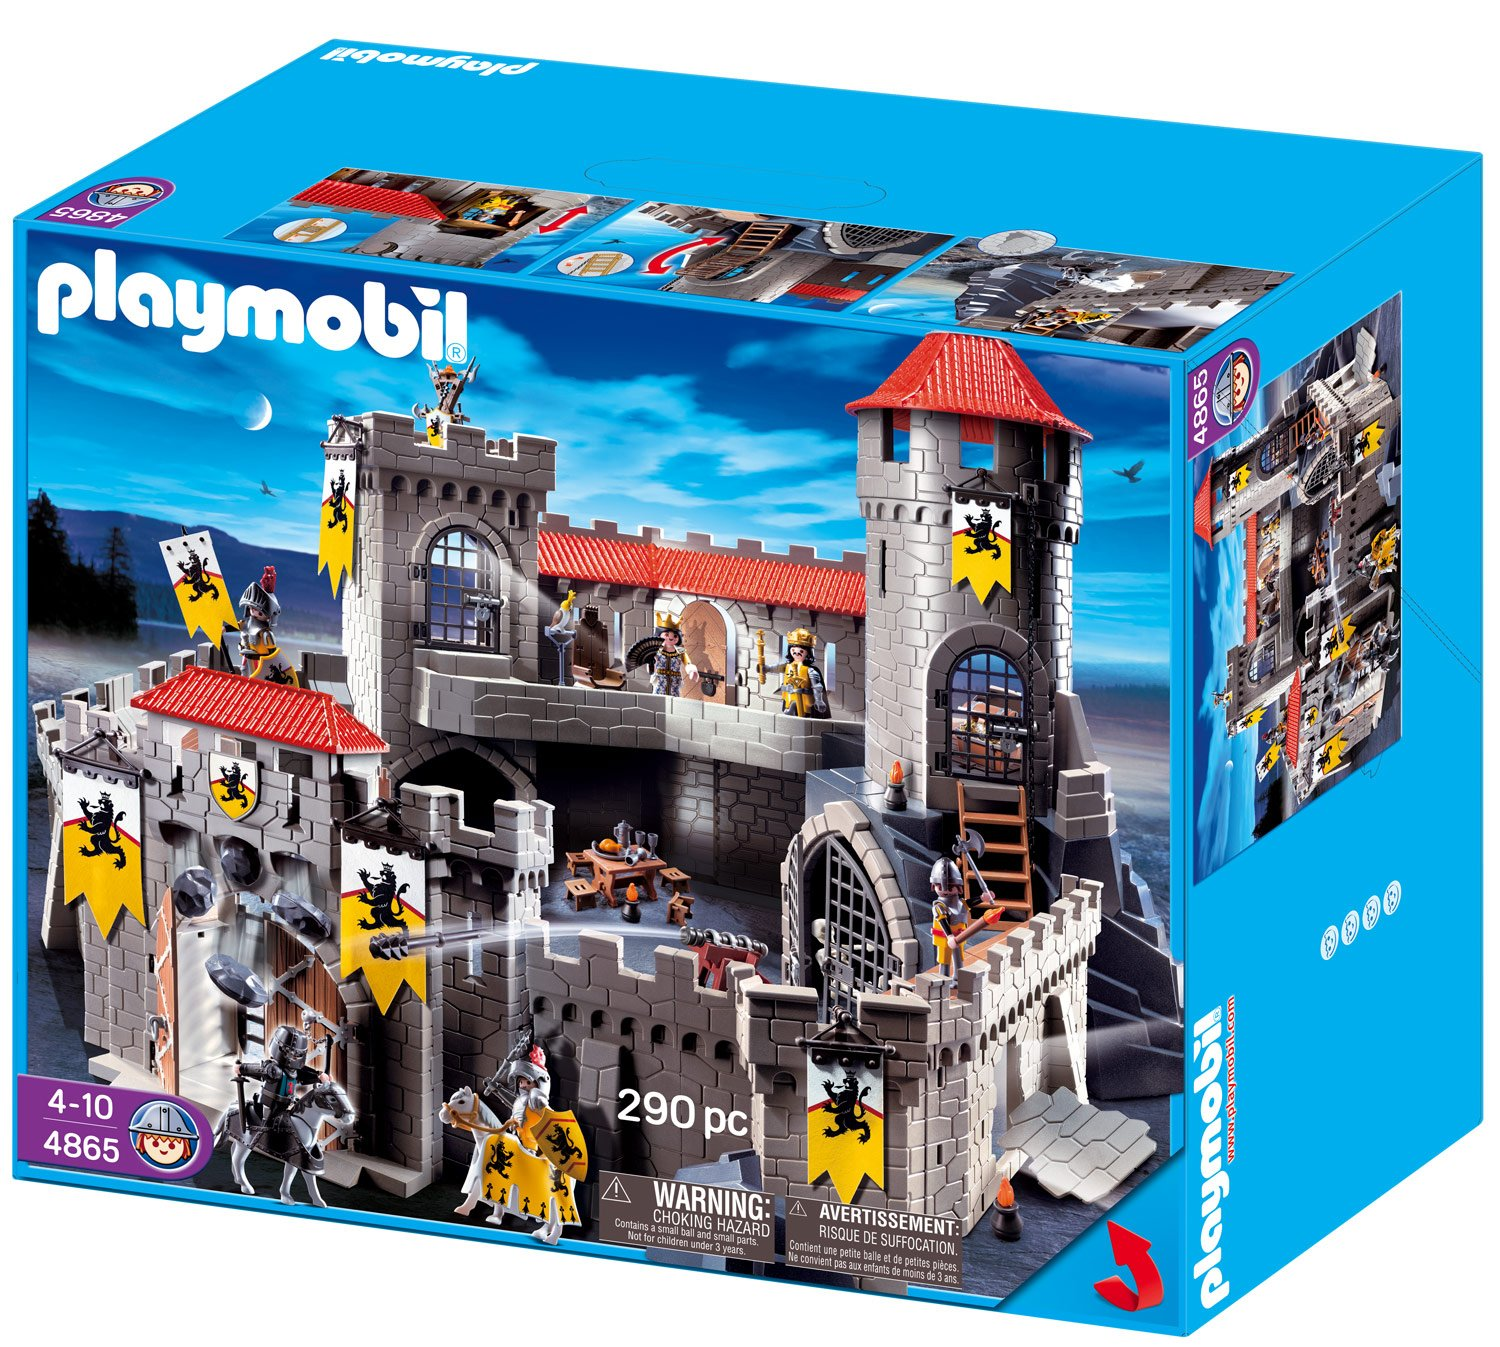 playmobil gro e l wenritterburg 4865 preisvergleich. Black Bedroom Furniture Sets. Home Design Ideas